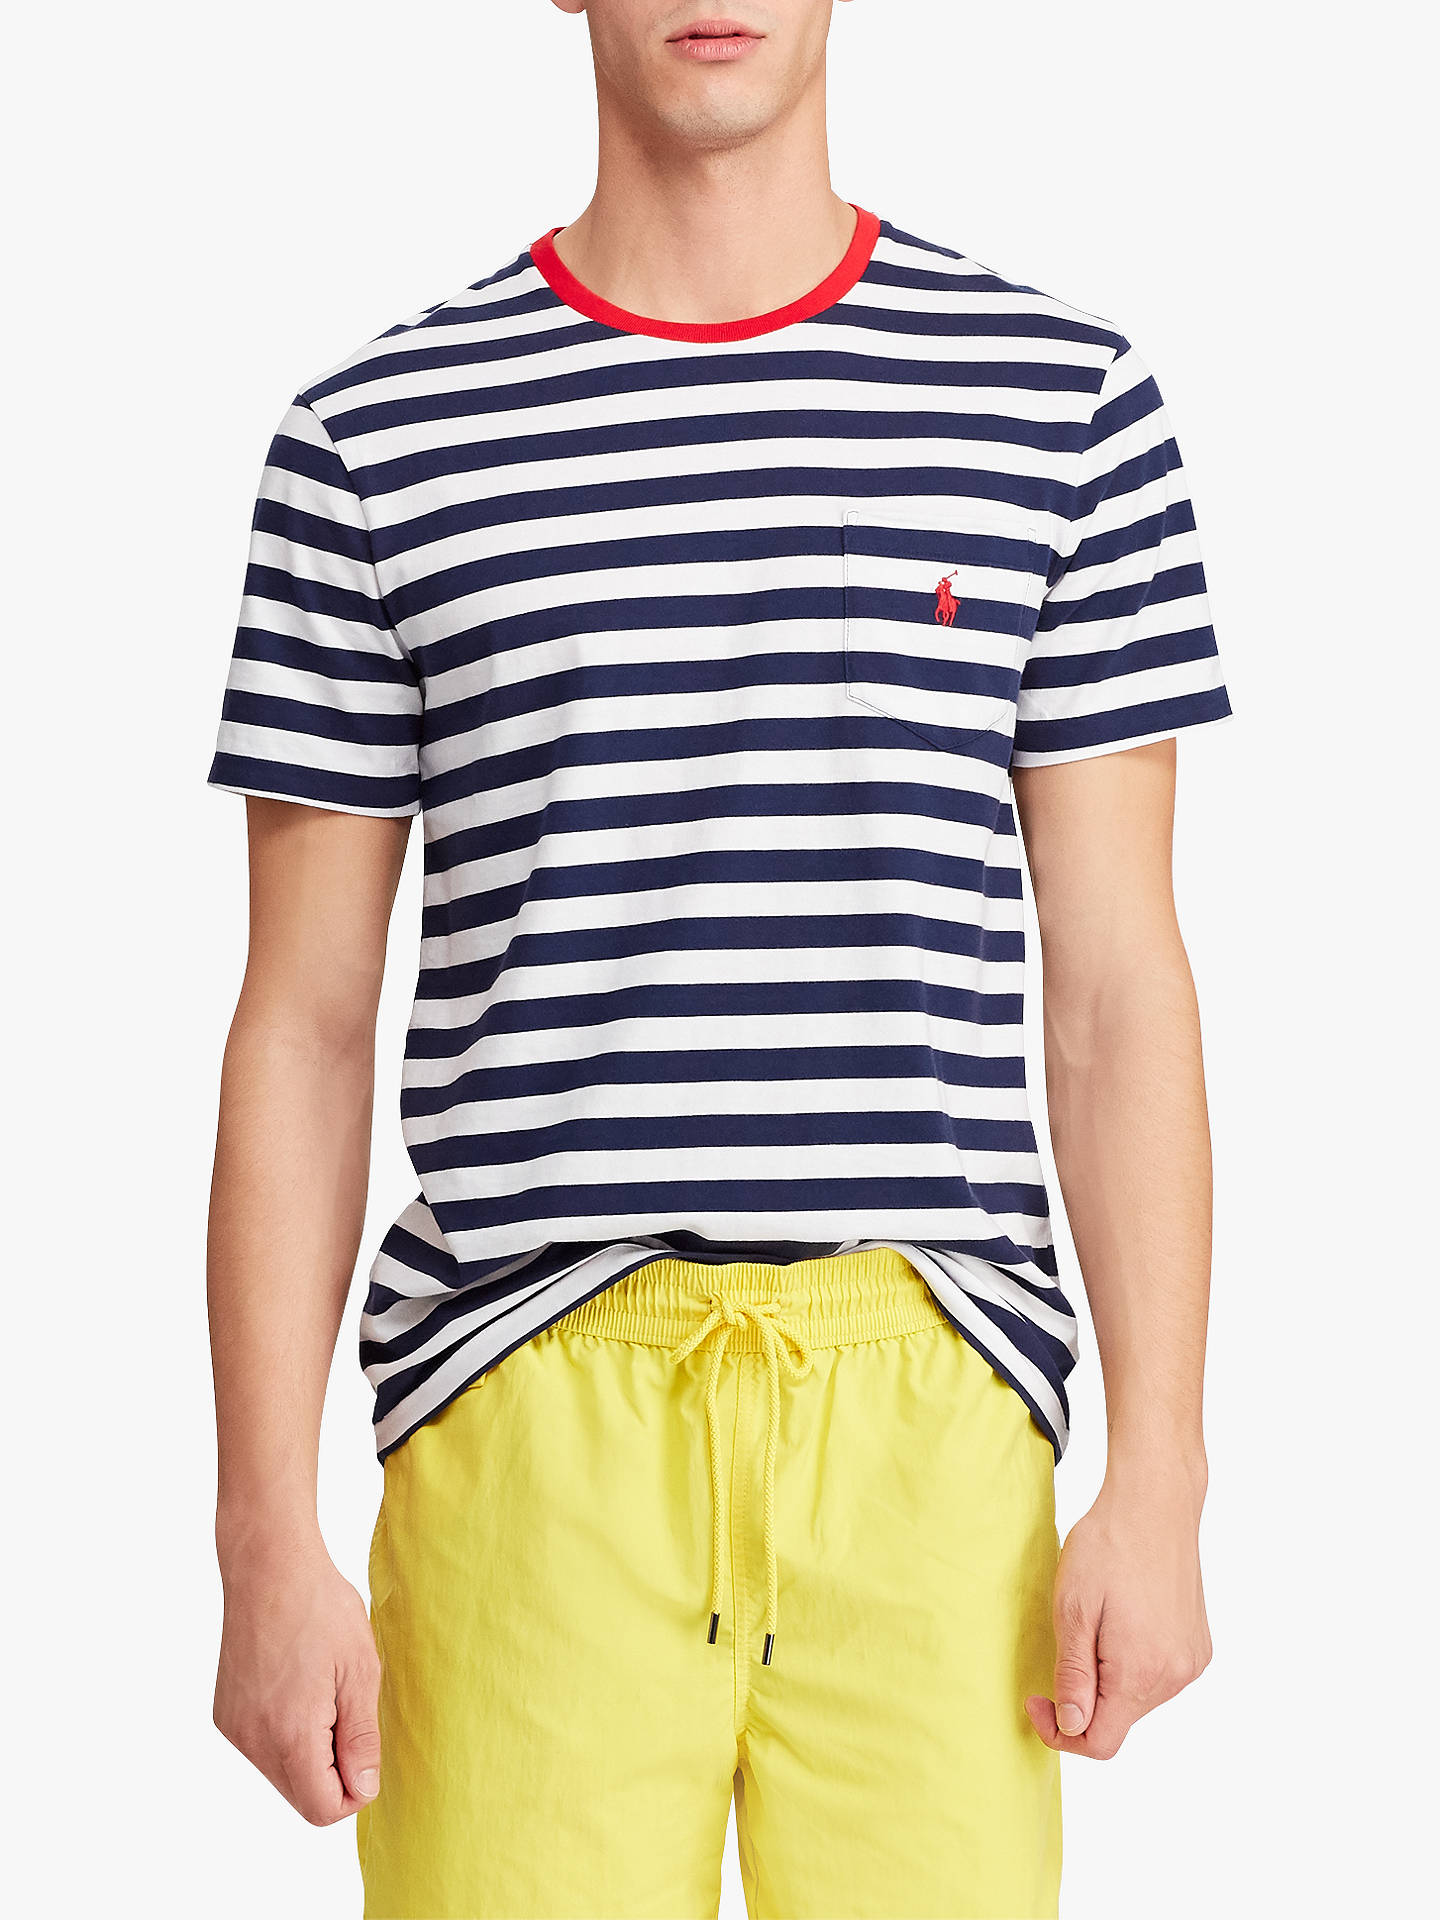 0a5c55c0 Buy Polo Ralph Lauren Stripe Pocket Short Sleeve T-Shirt, Navy/White, ...